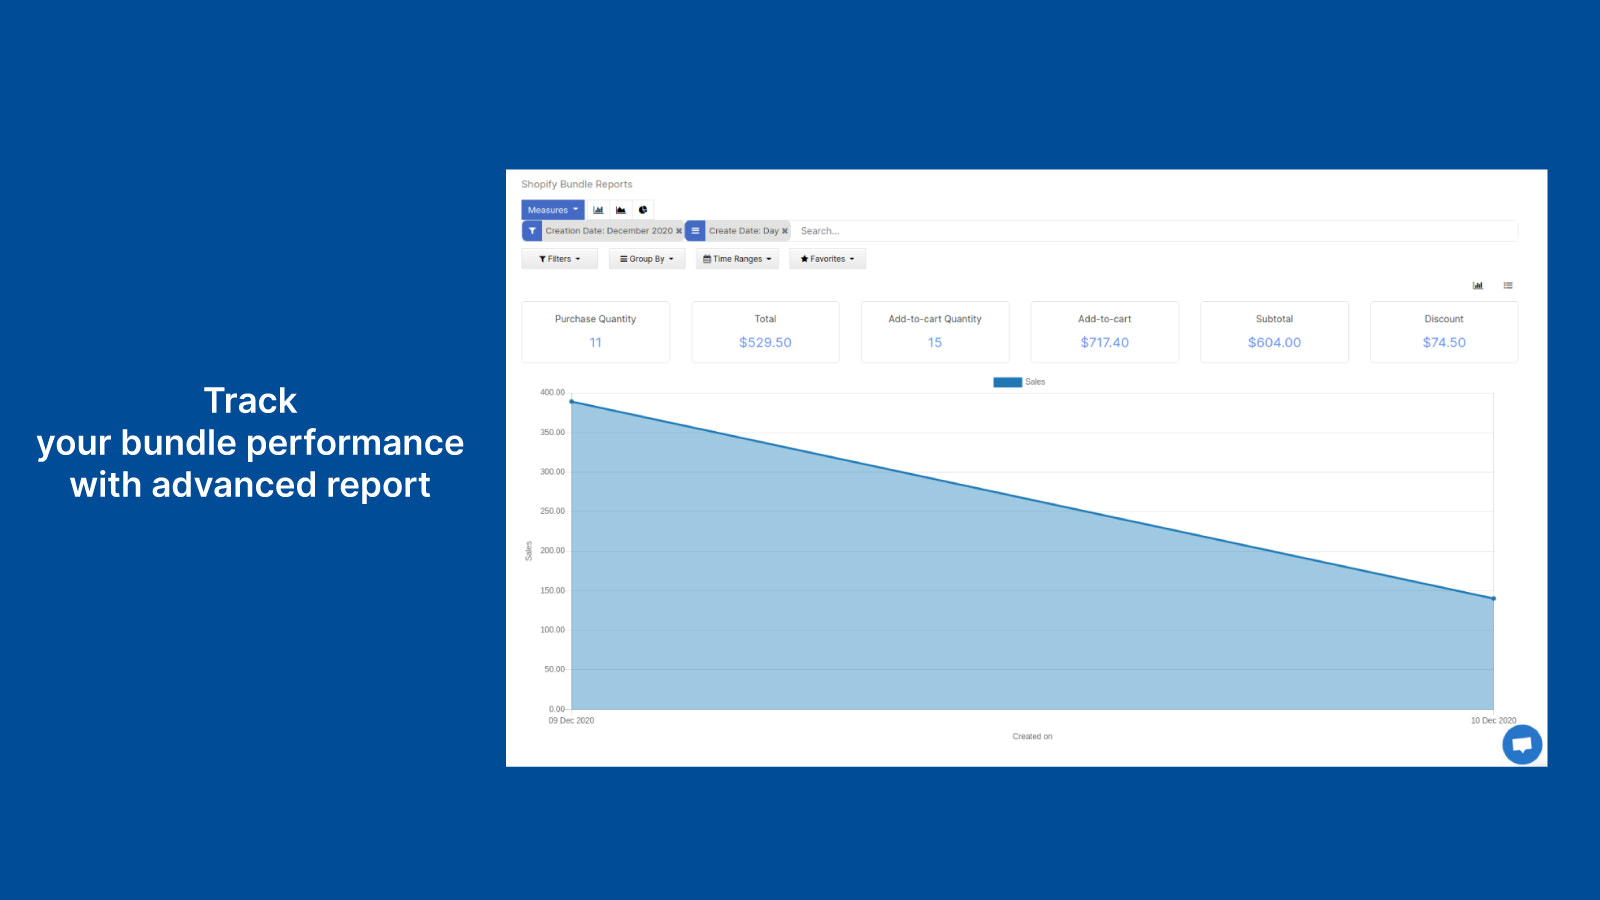 Track your bundle products performance with advanced report